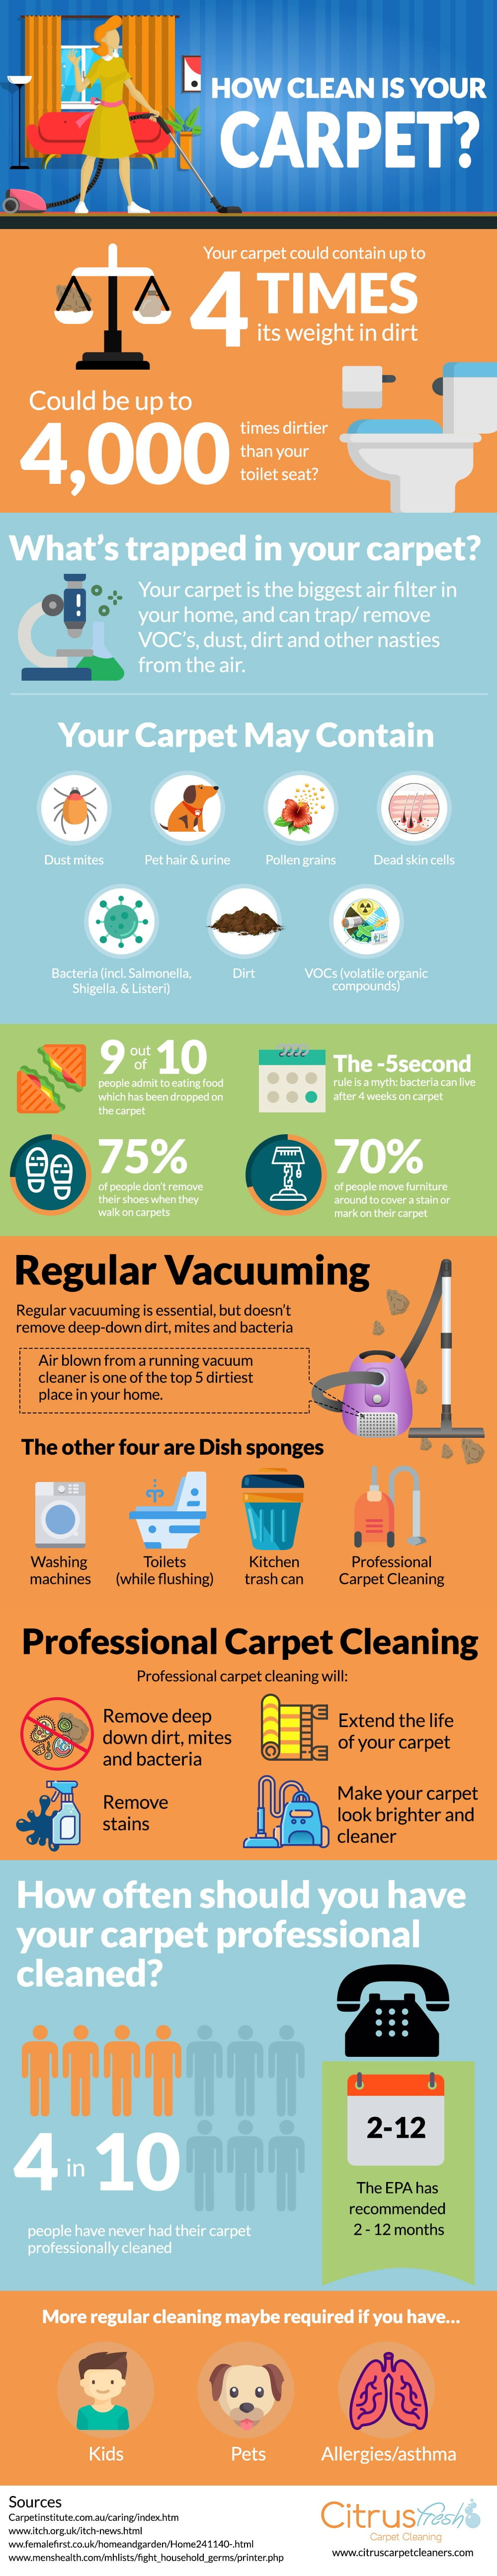 How clean is your carpet infographic